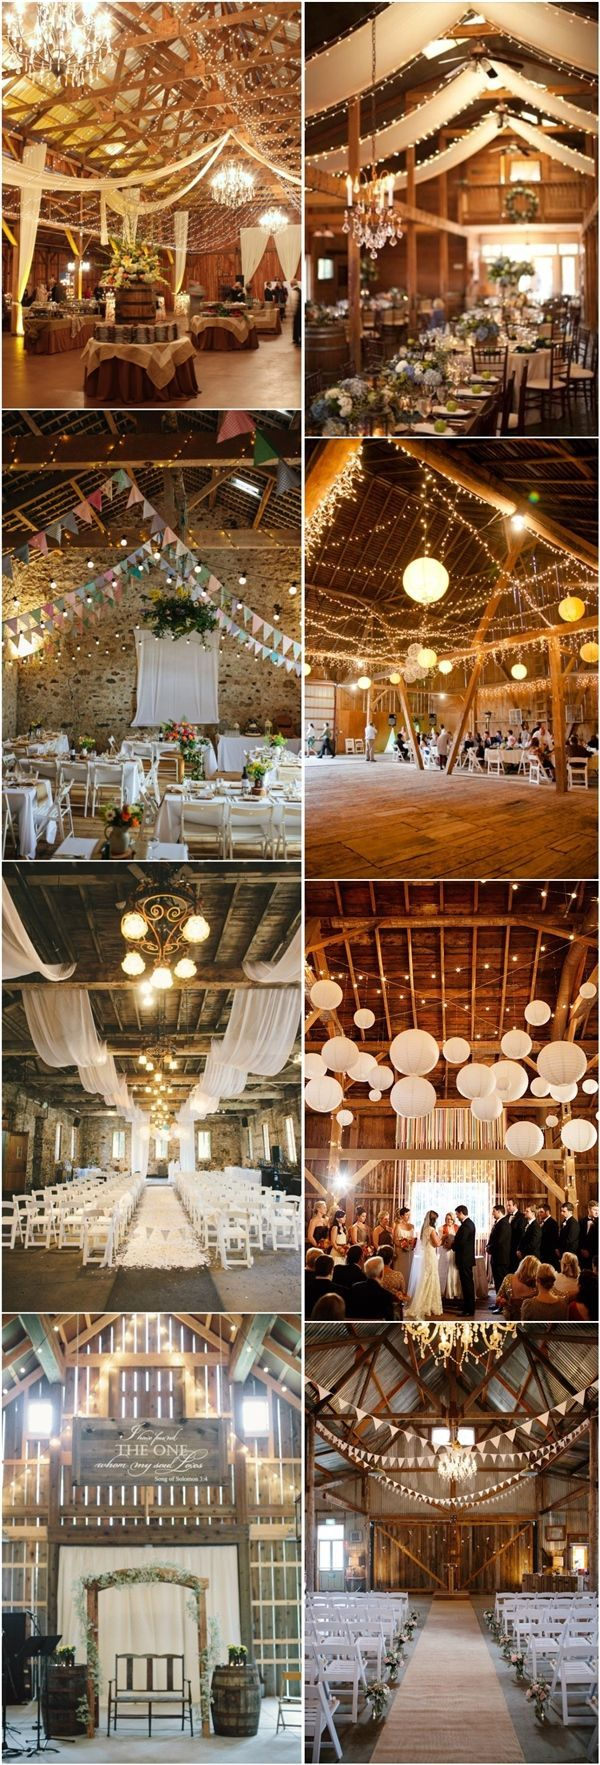 30 Romantic Indoor Barn Wedding Decor Ideas with Lights | 30 Romantische Ideen…